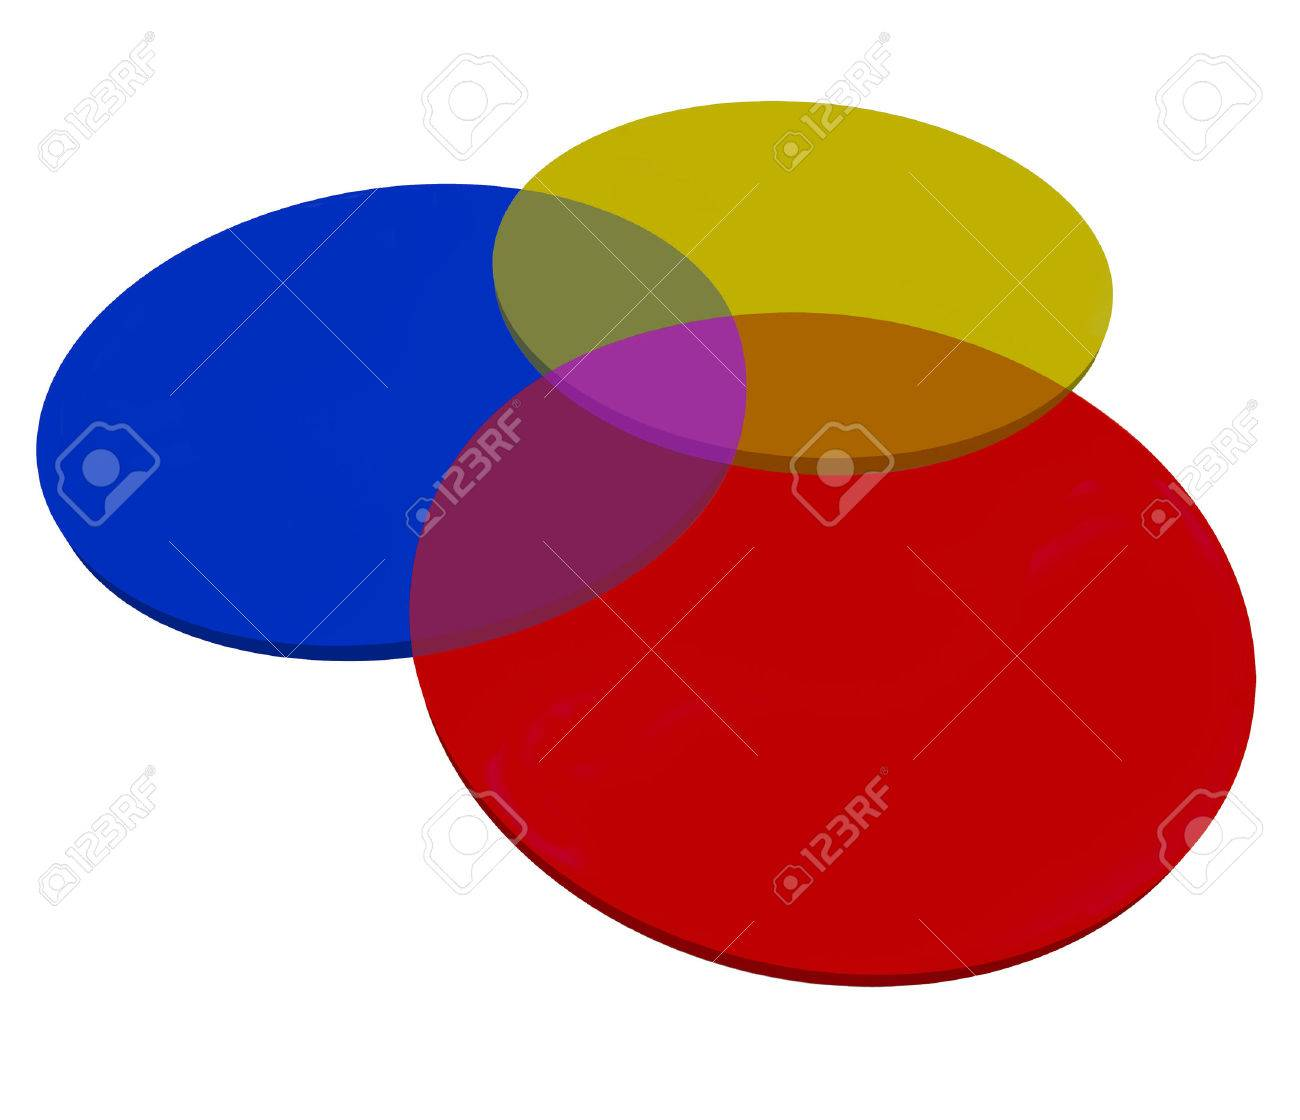 Venn diagram images stock pictures royalty free venn diagram three or 3 venn diagram overlapping circles to illustrate shared or common qualities characteristics pooptronica